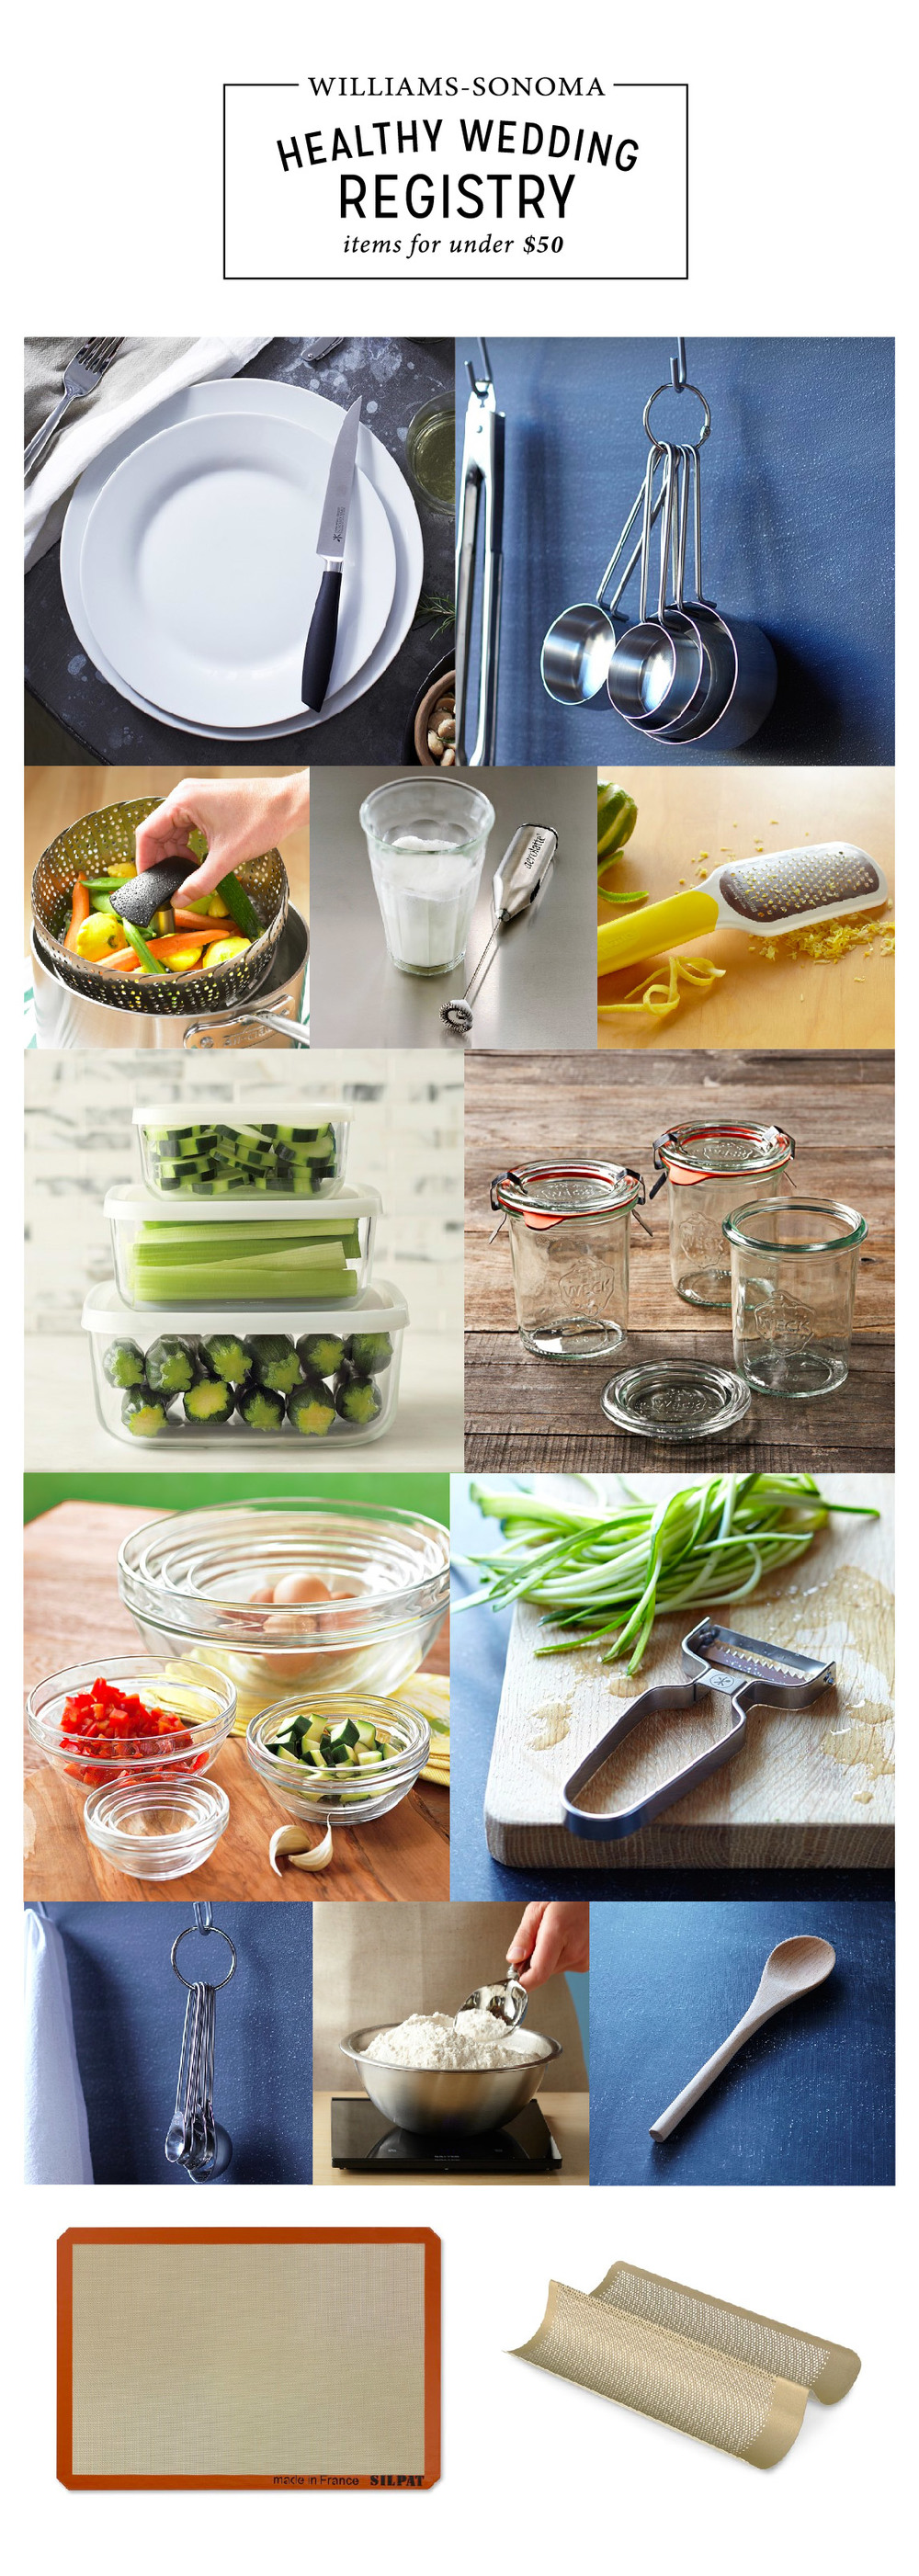 Williams-Sonoma healthy wedding registry kitchen items under $50: Enter to win $5000 to WS!!!